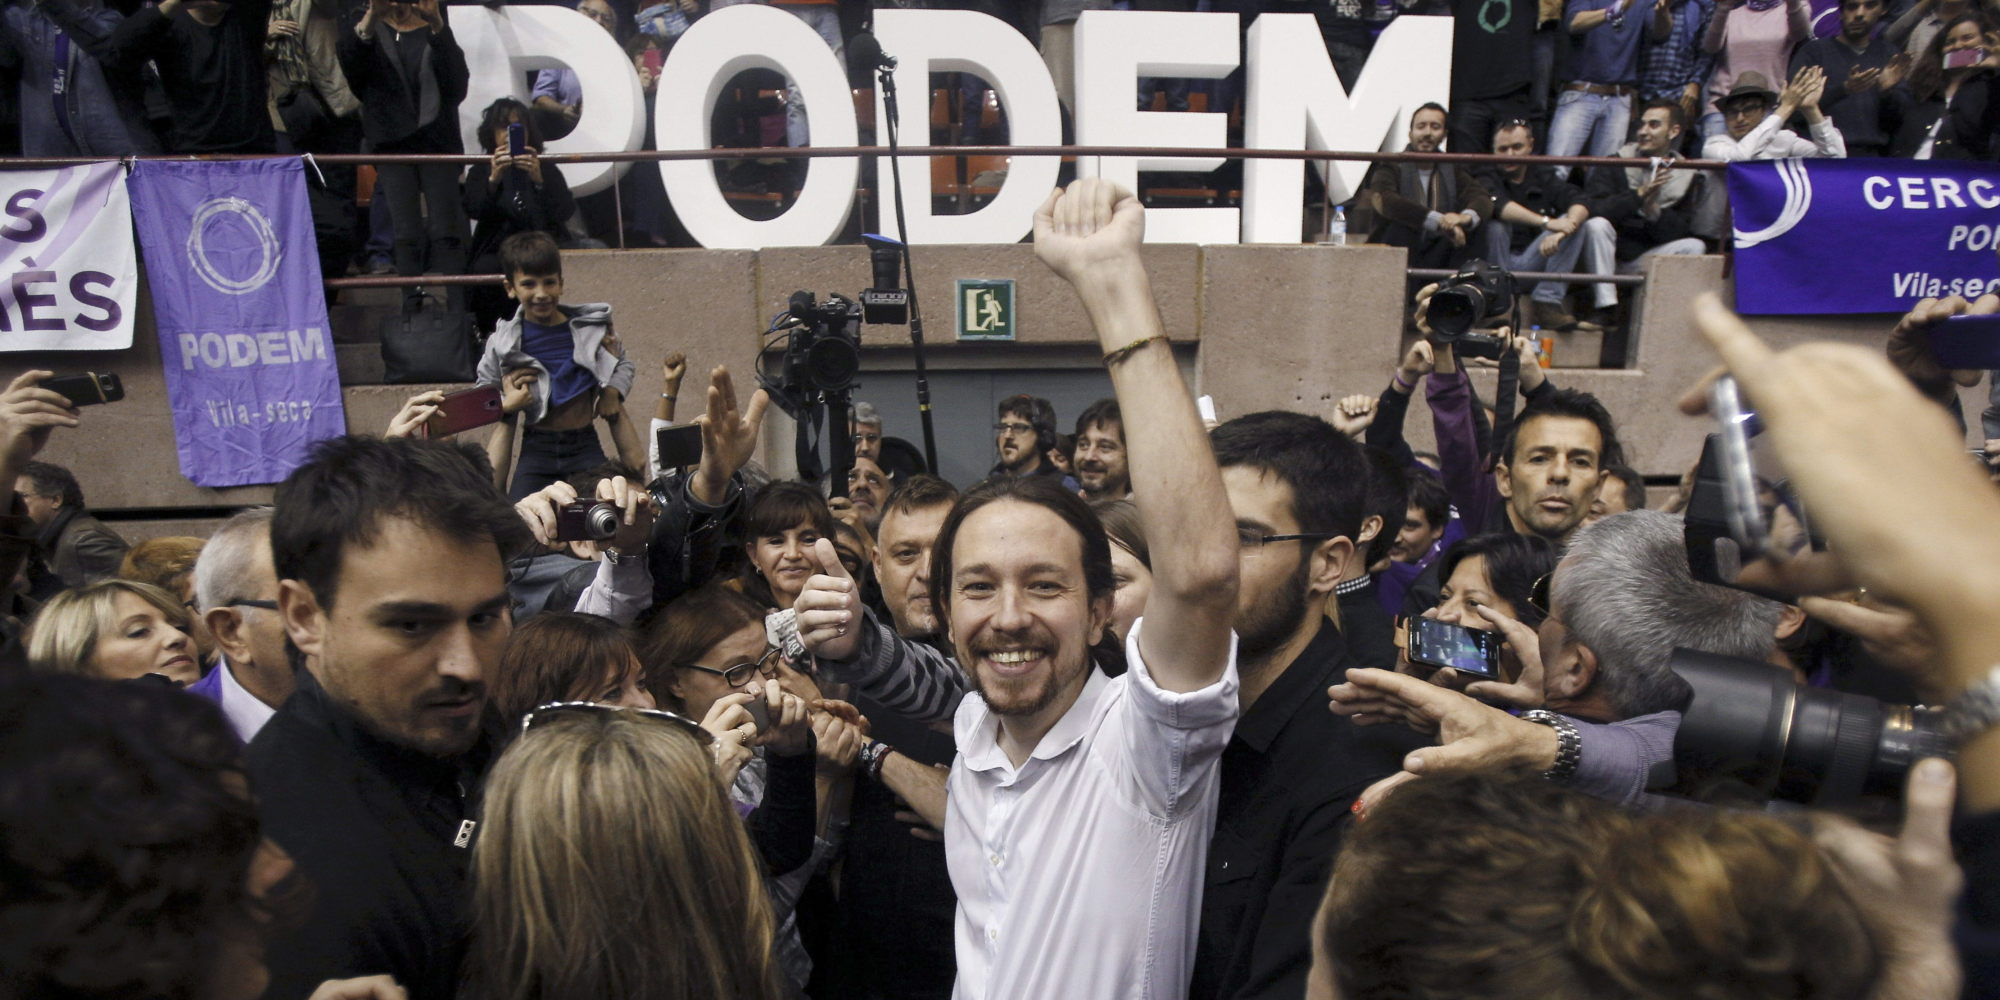 General Secretary of Spanish party Podemos, Pablo Iglesias (C), attends a rally in Barcelona, Spain, 21 December 2014. Iglesias has reasserted his commitment with Catalonia's right to decide and has offered to open a constituent process to 'discuss with everyone about everything', but he also assured he will never embrace Prime Minister, Mariano Rajoy, or Catalonia's regional President, Artur Mas. EFE/Alejandro García